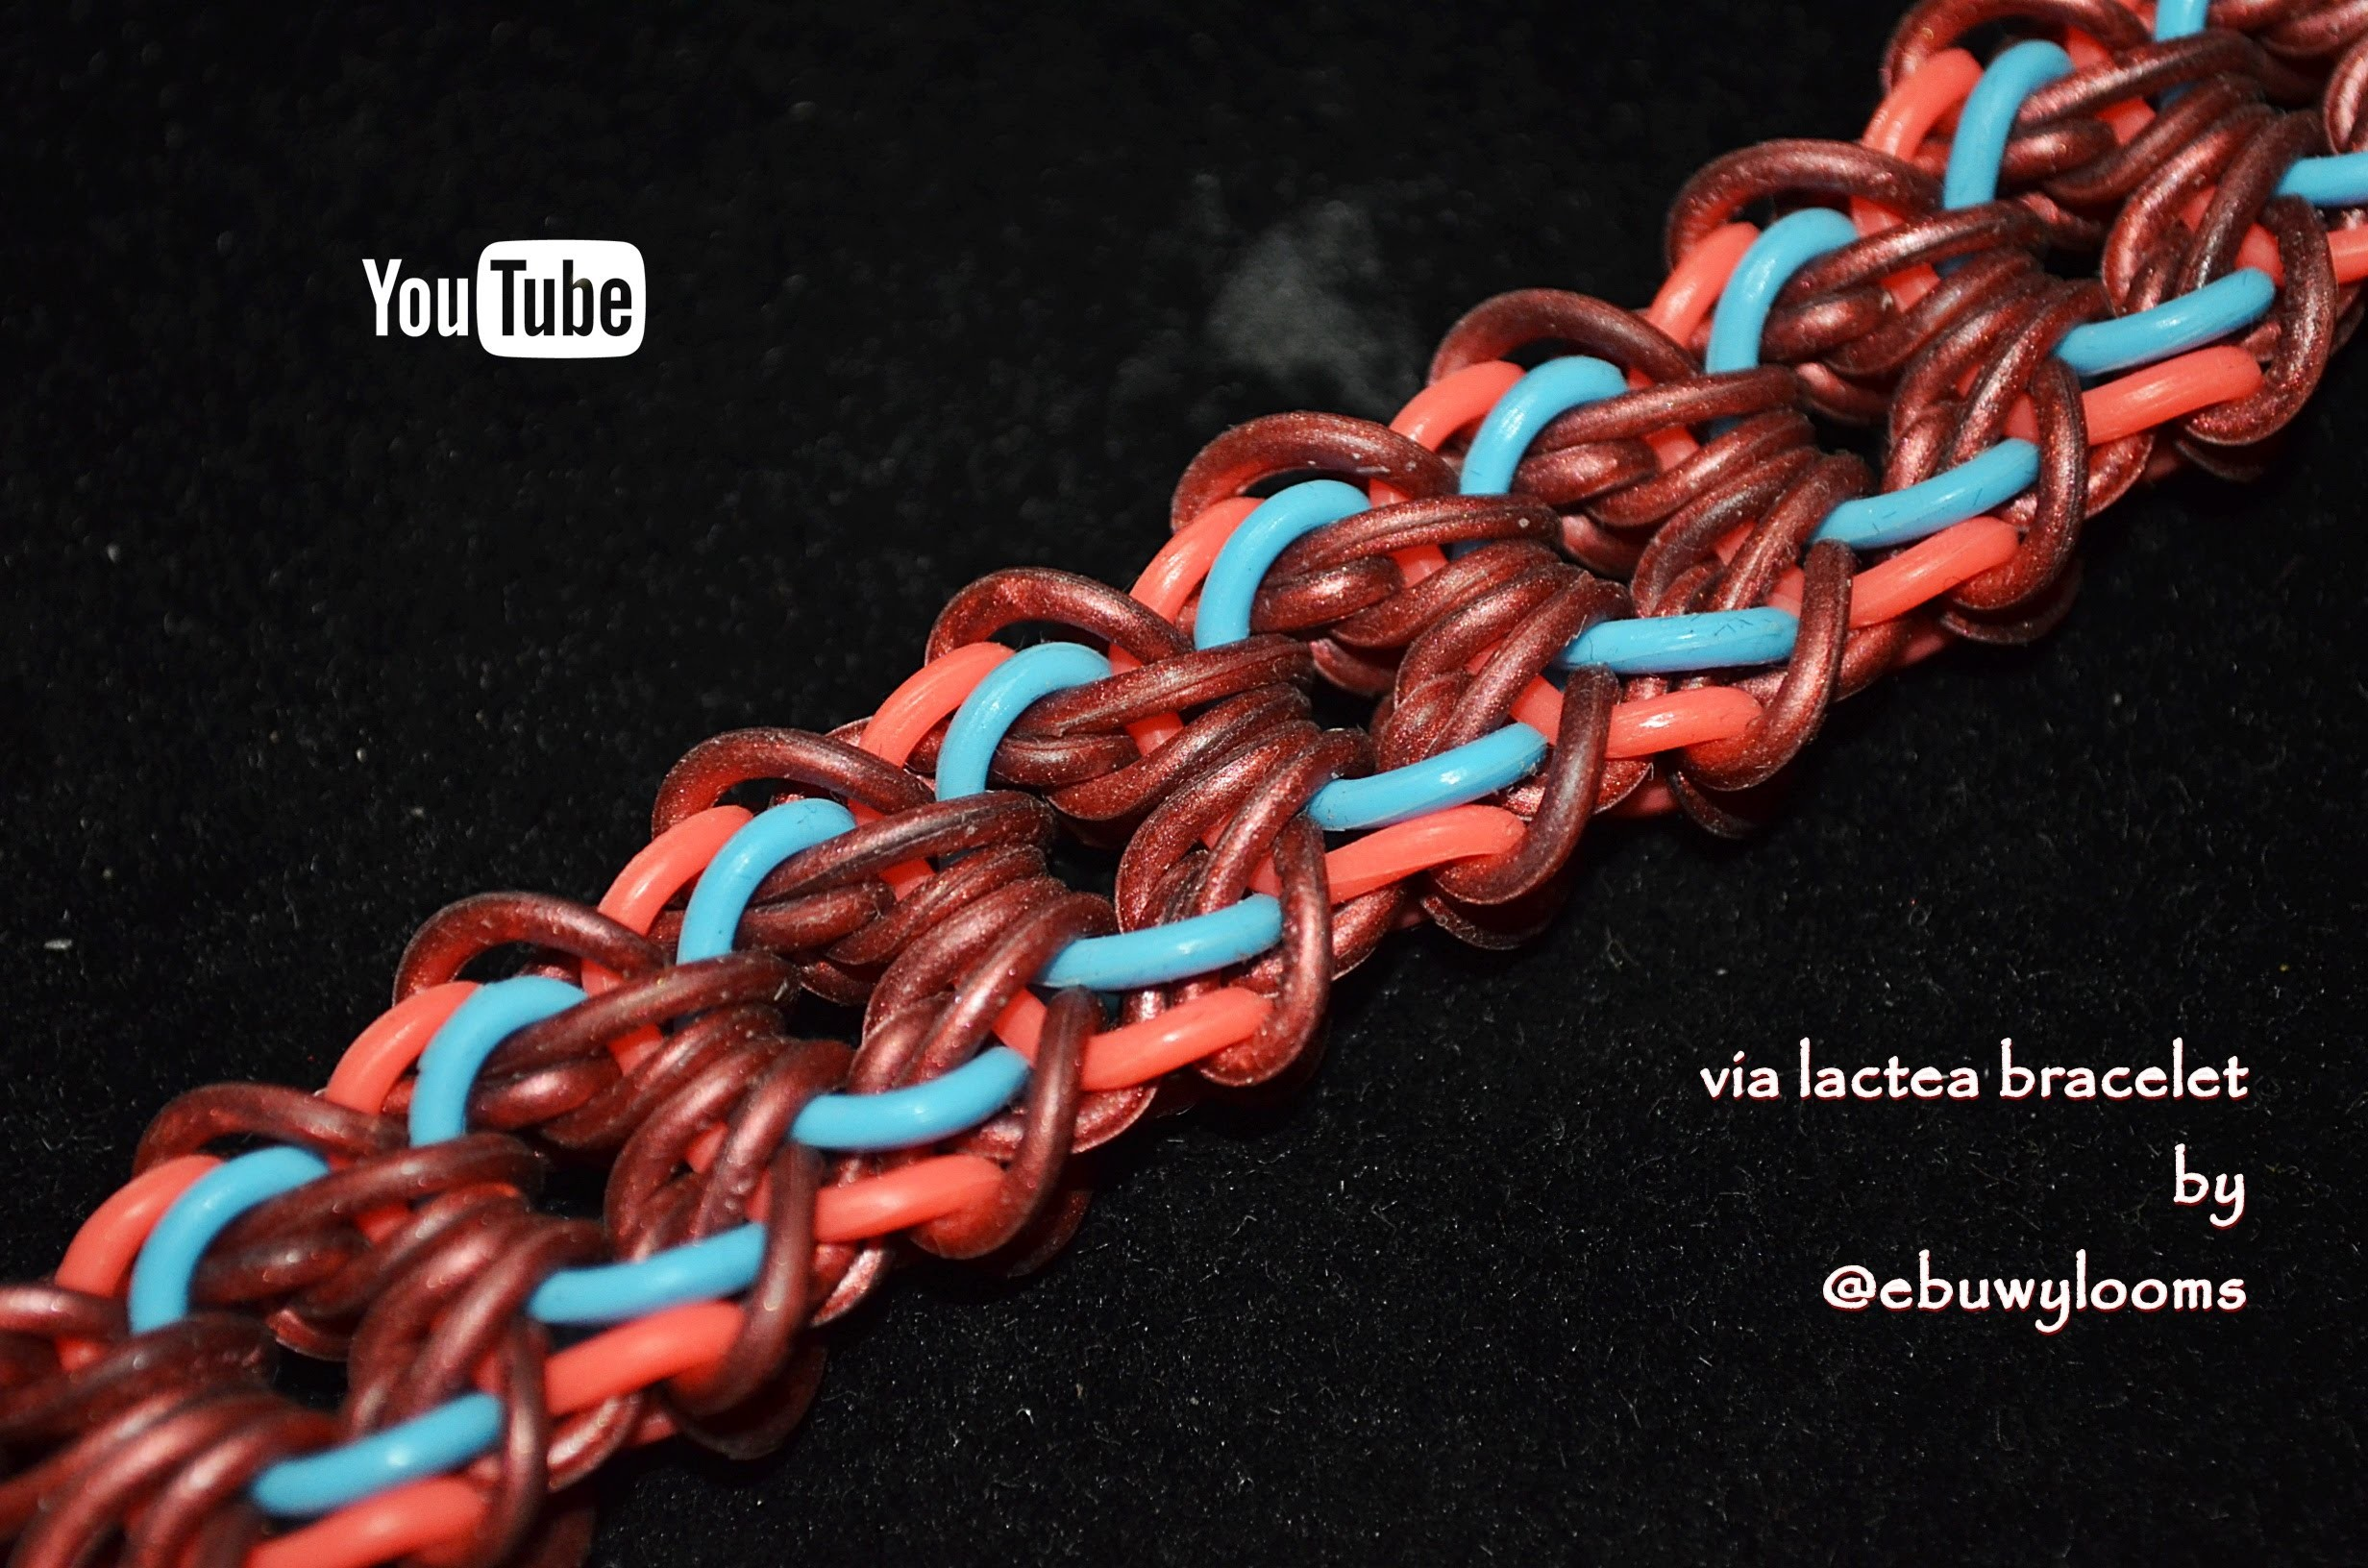 VIA LACTEA BRACELET HOOK ONLY DESIGN TUTORIAL